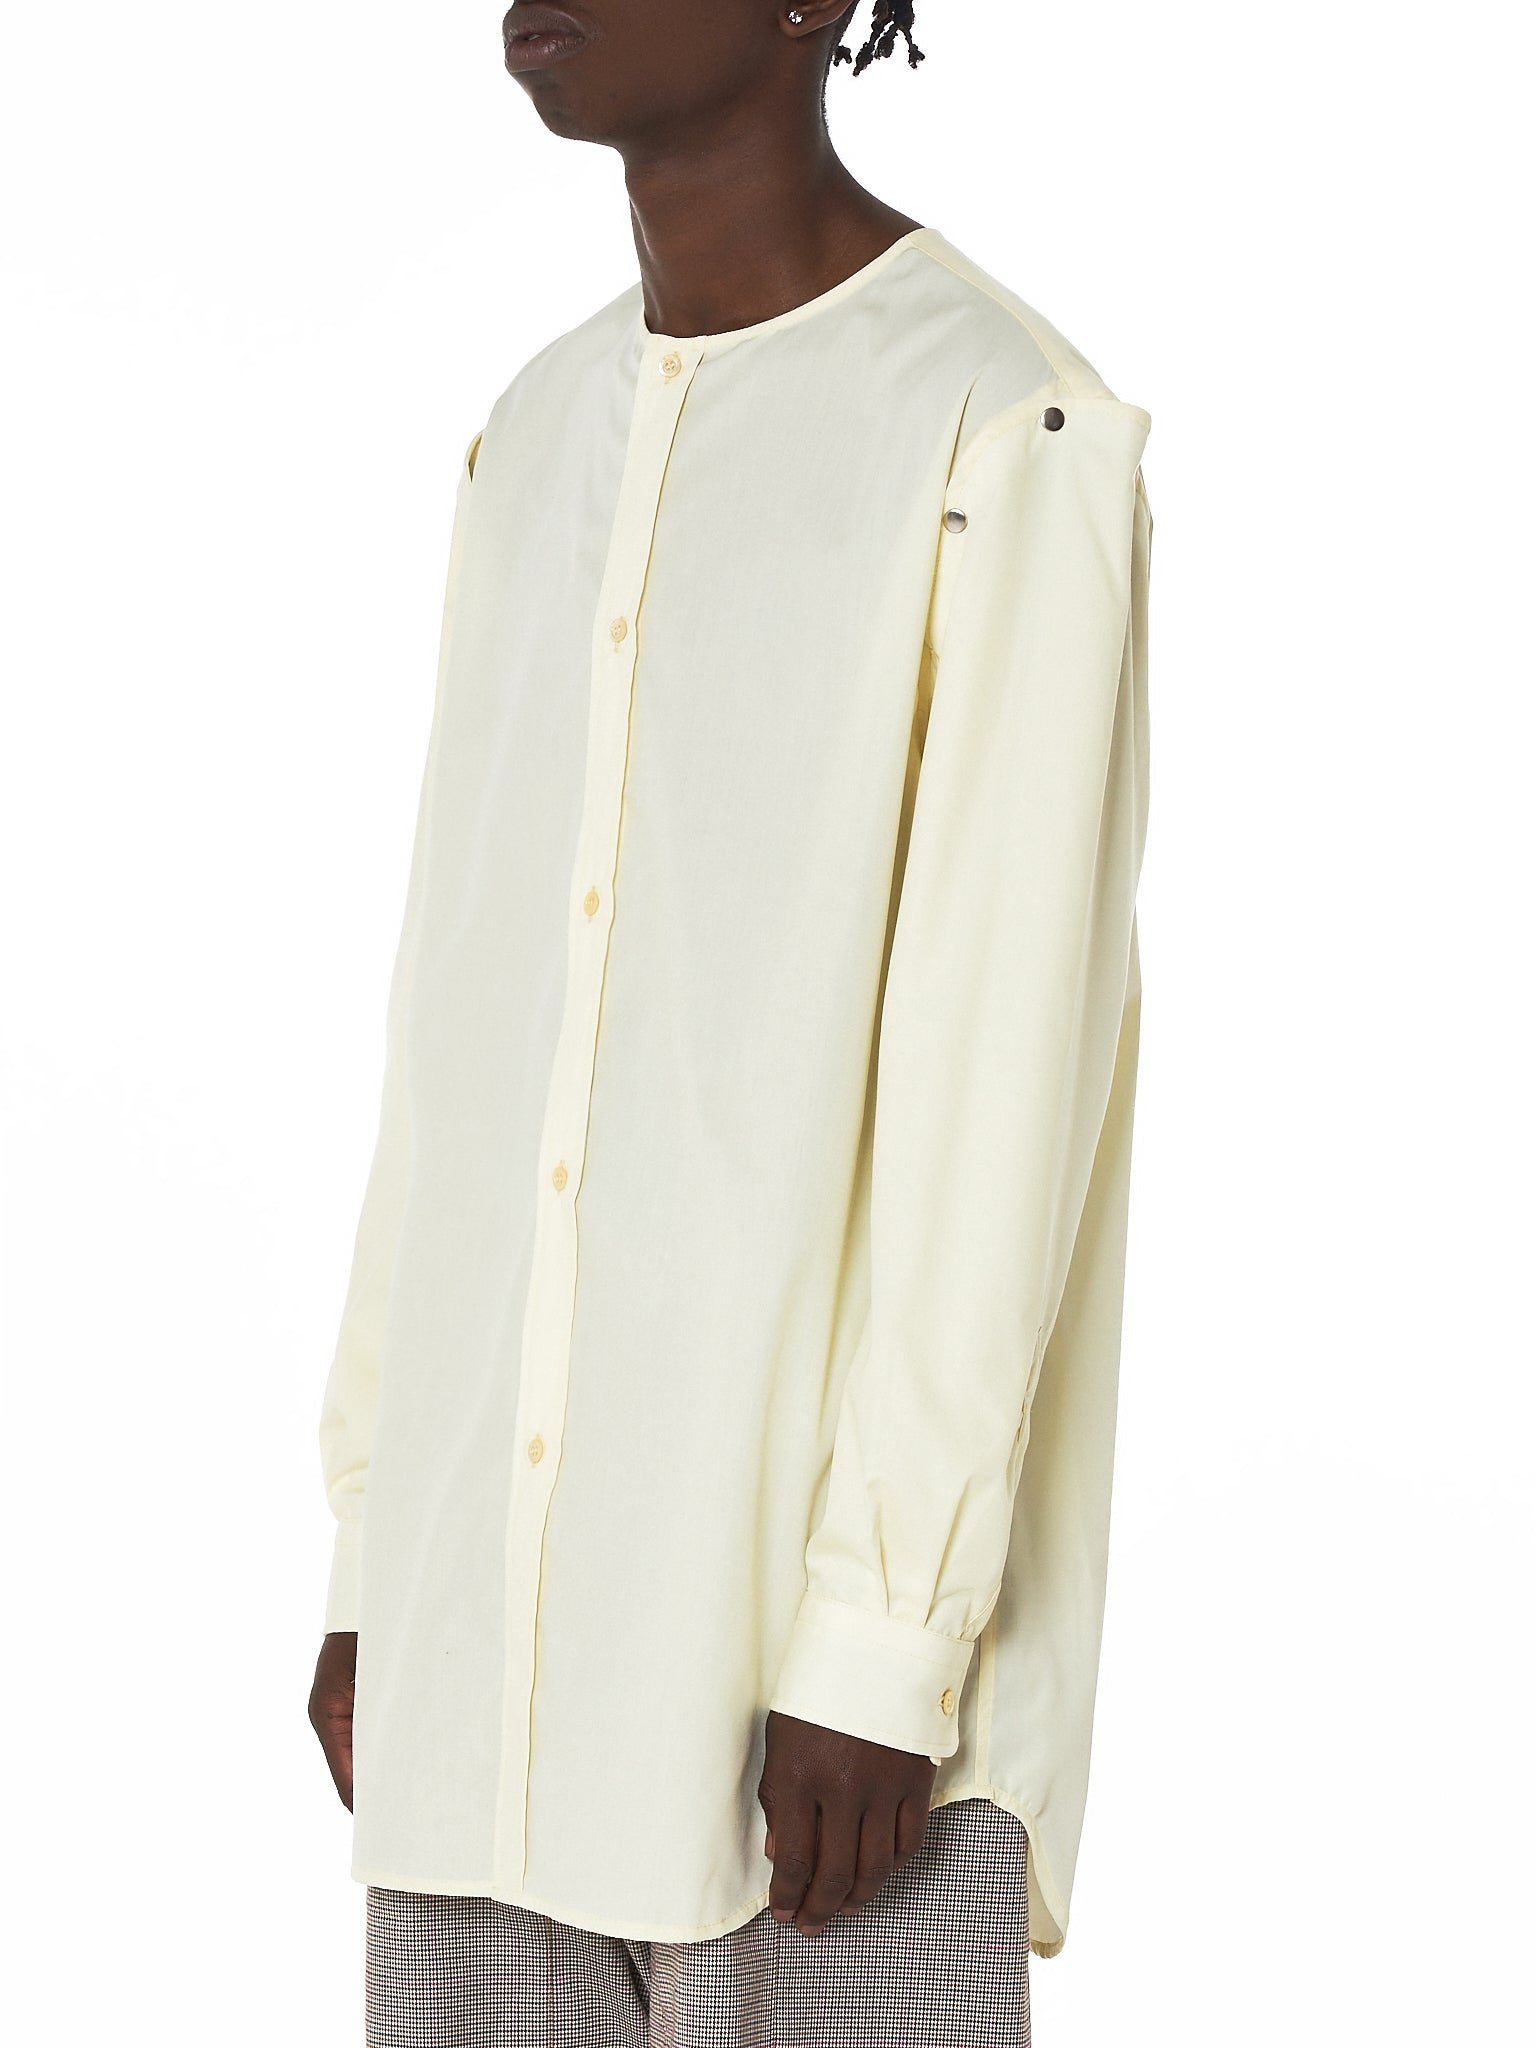 Raf Simons Deconstructed Shirt - Hlorenzo Side